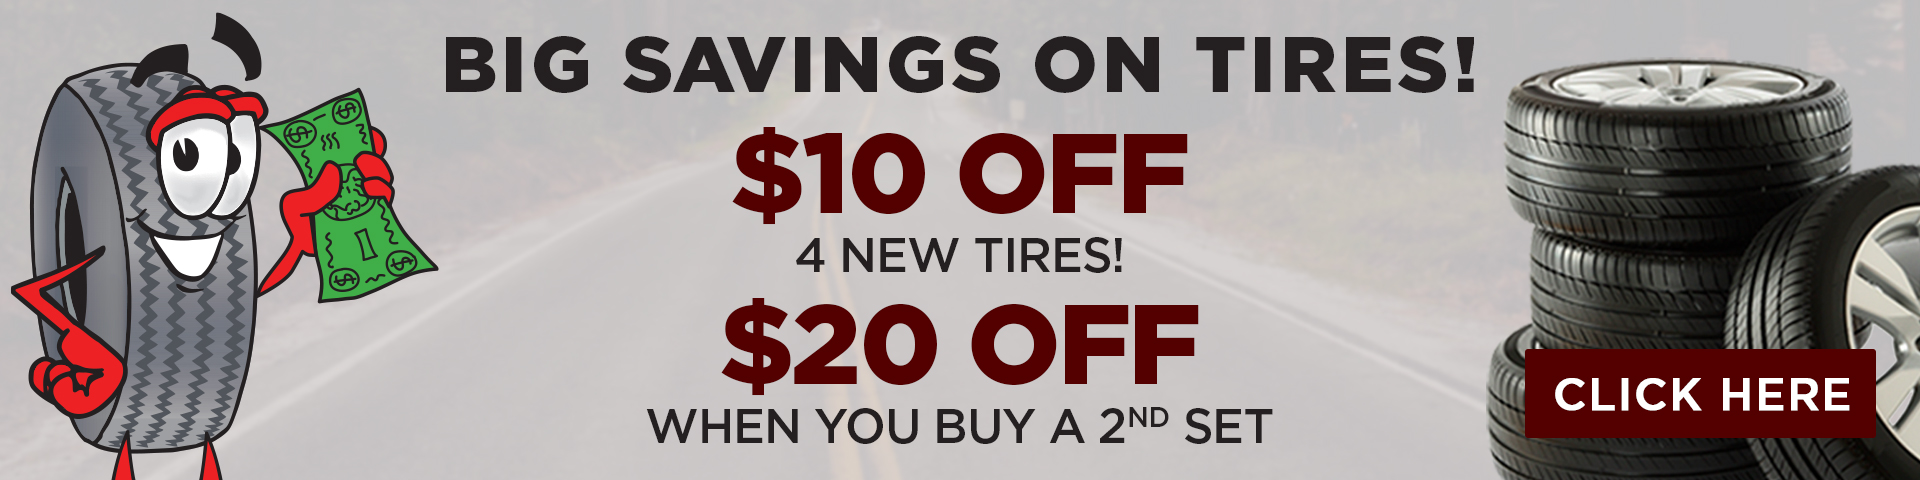 TP-Brake_Savings-on-Tires_1920x480